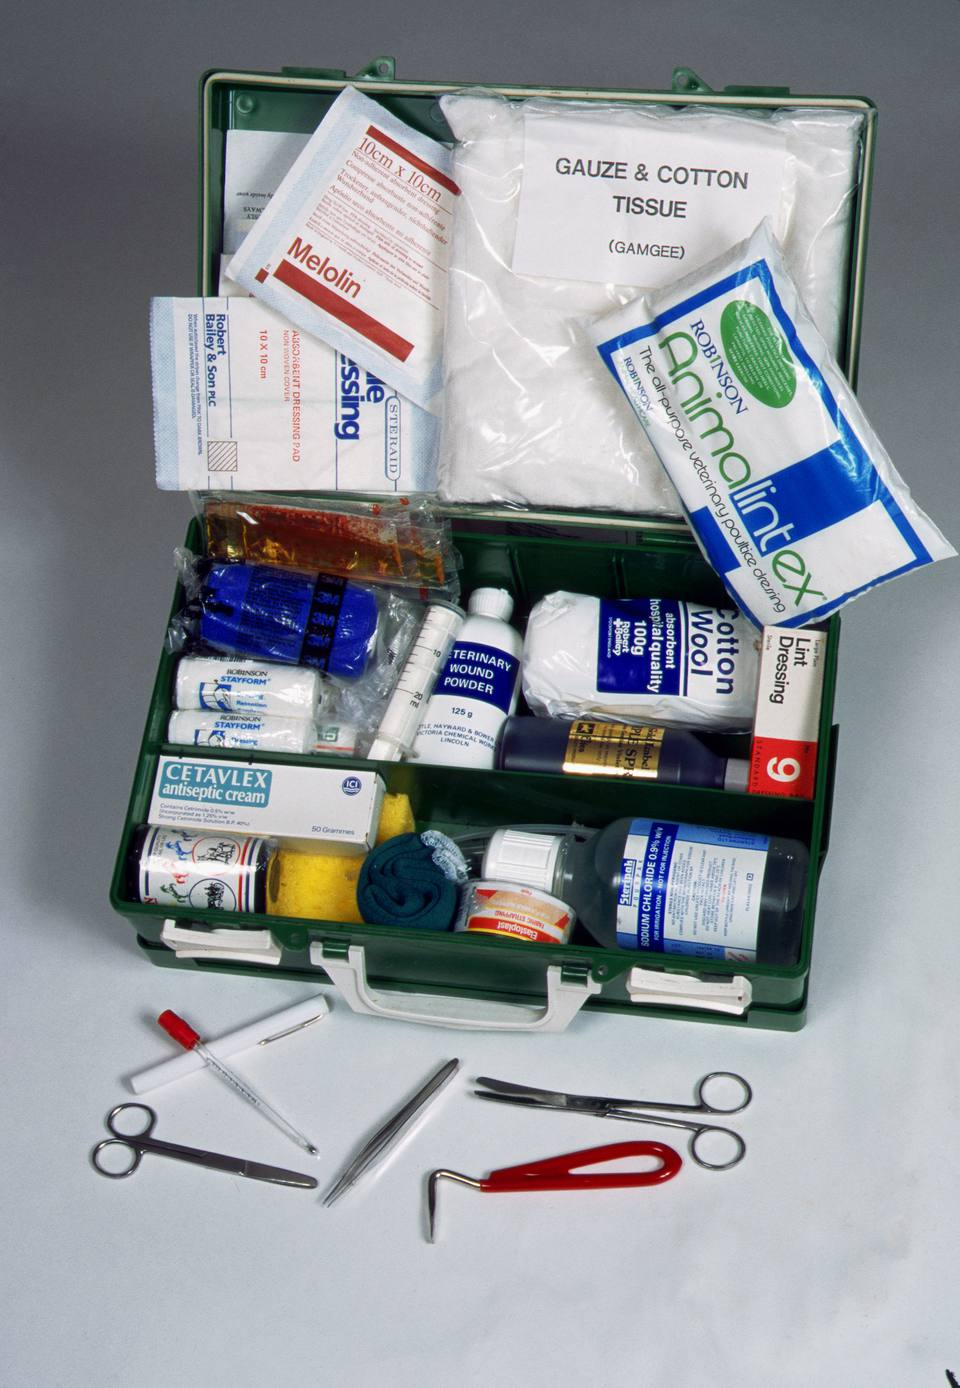 Equine First Aid Kit An equine first aid kit opens to reveal is contents.